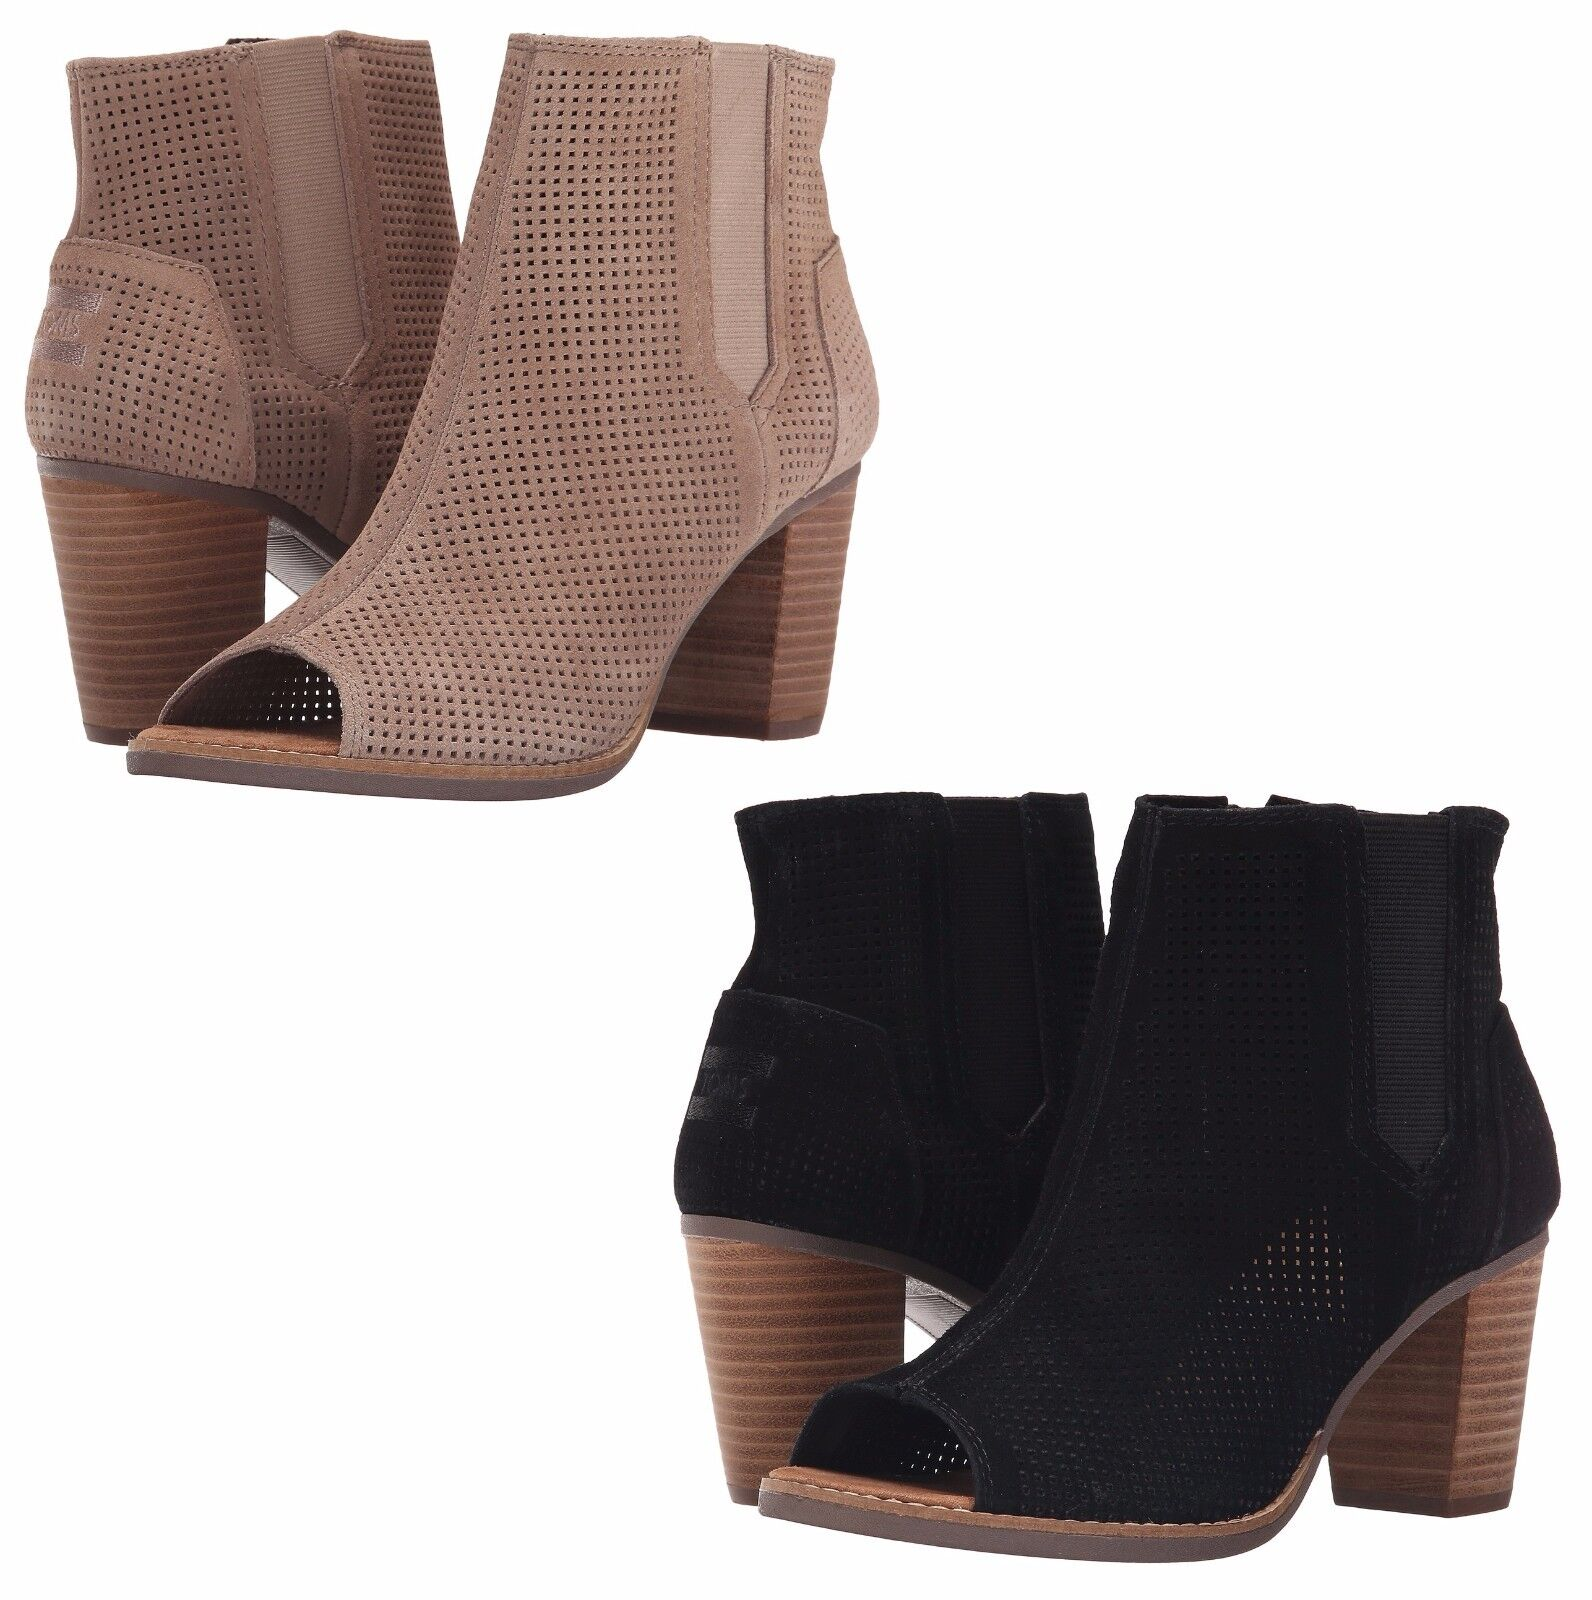 b09f9a2cc24 Toms Majorca PEEP Toe BOOTIES Stucco Suede Perforated 9.5 for sale ...